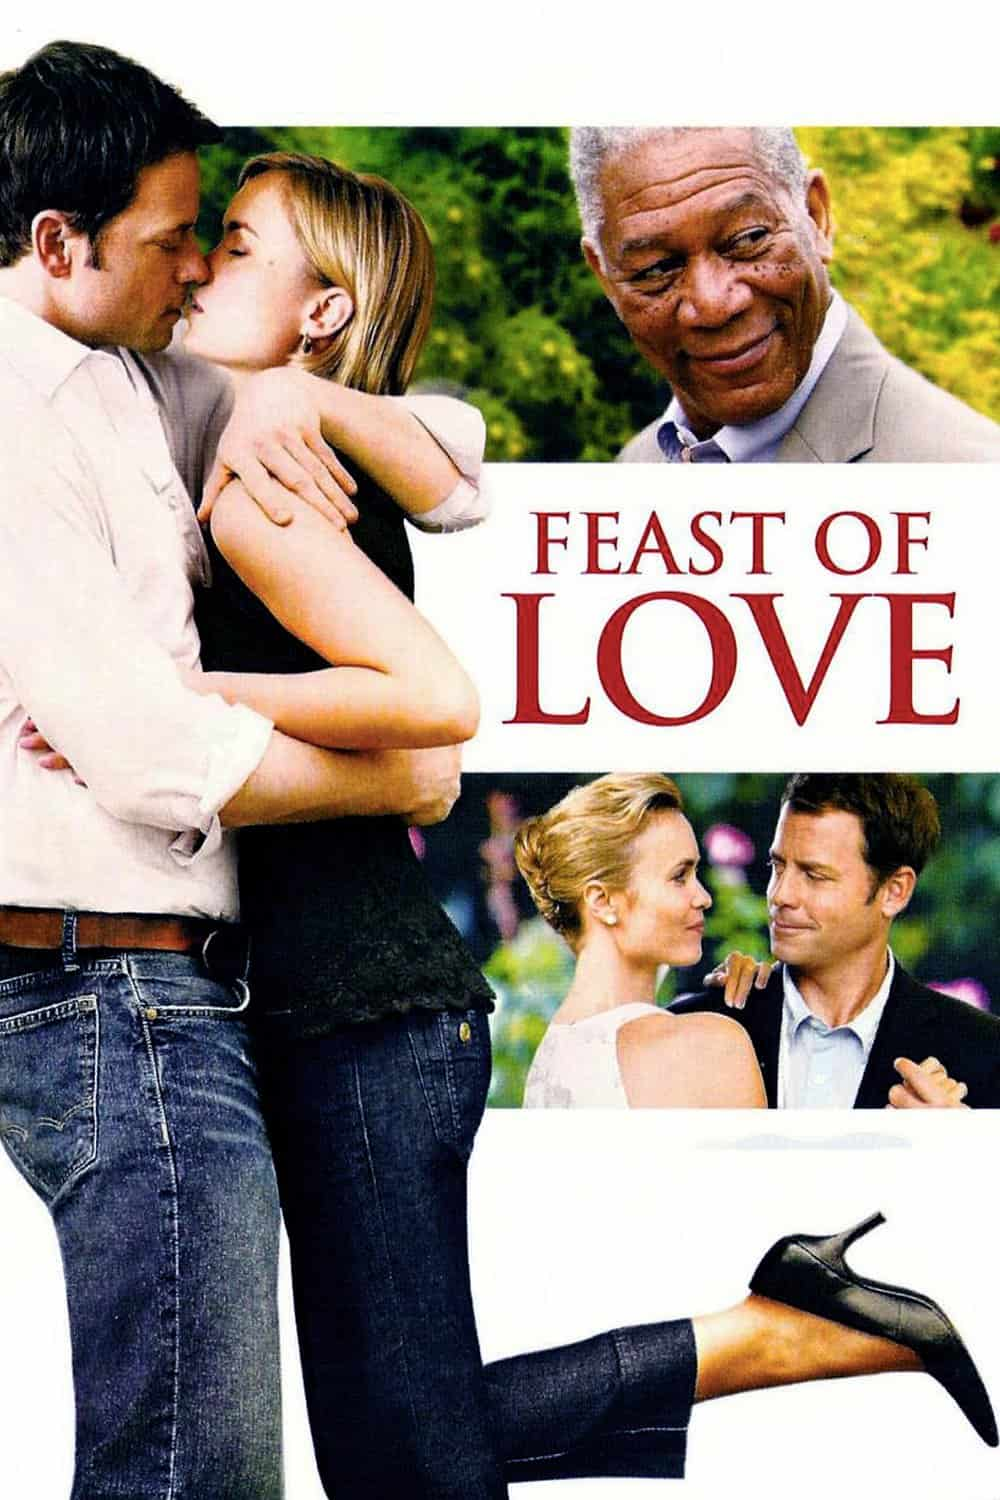 Feast of Love, 2007